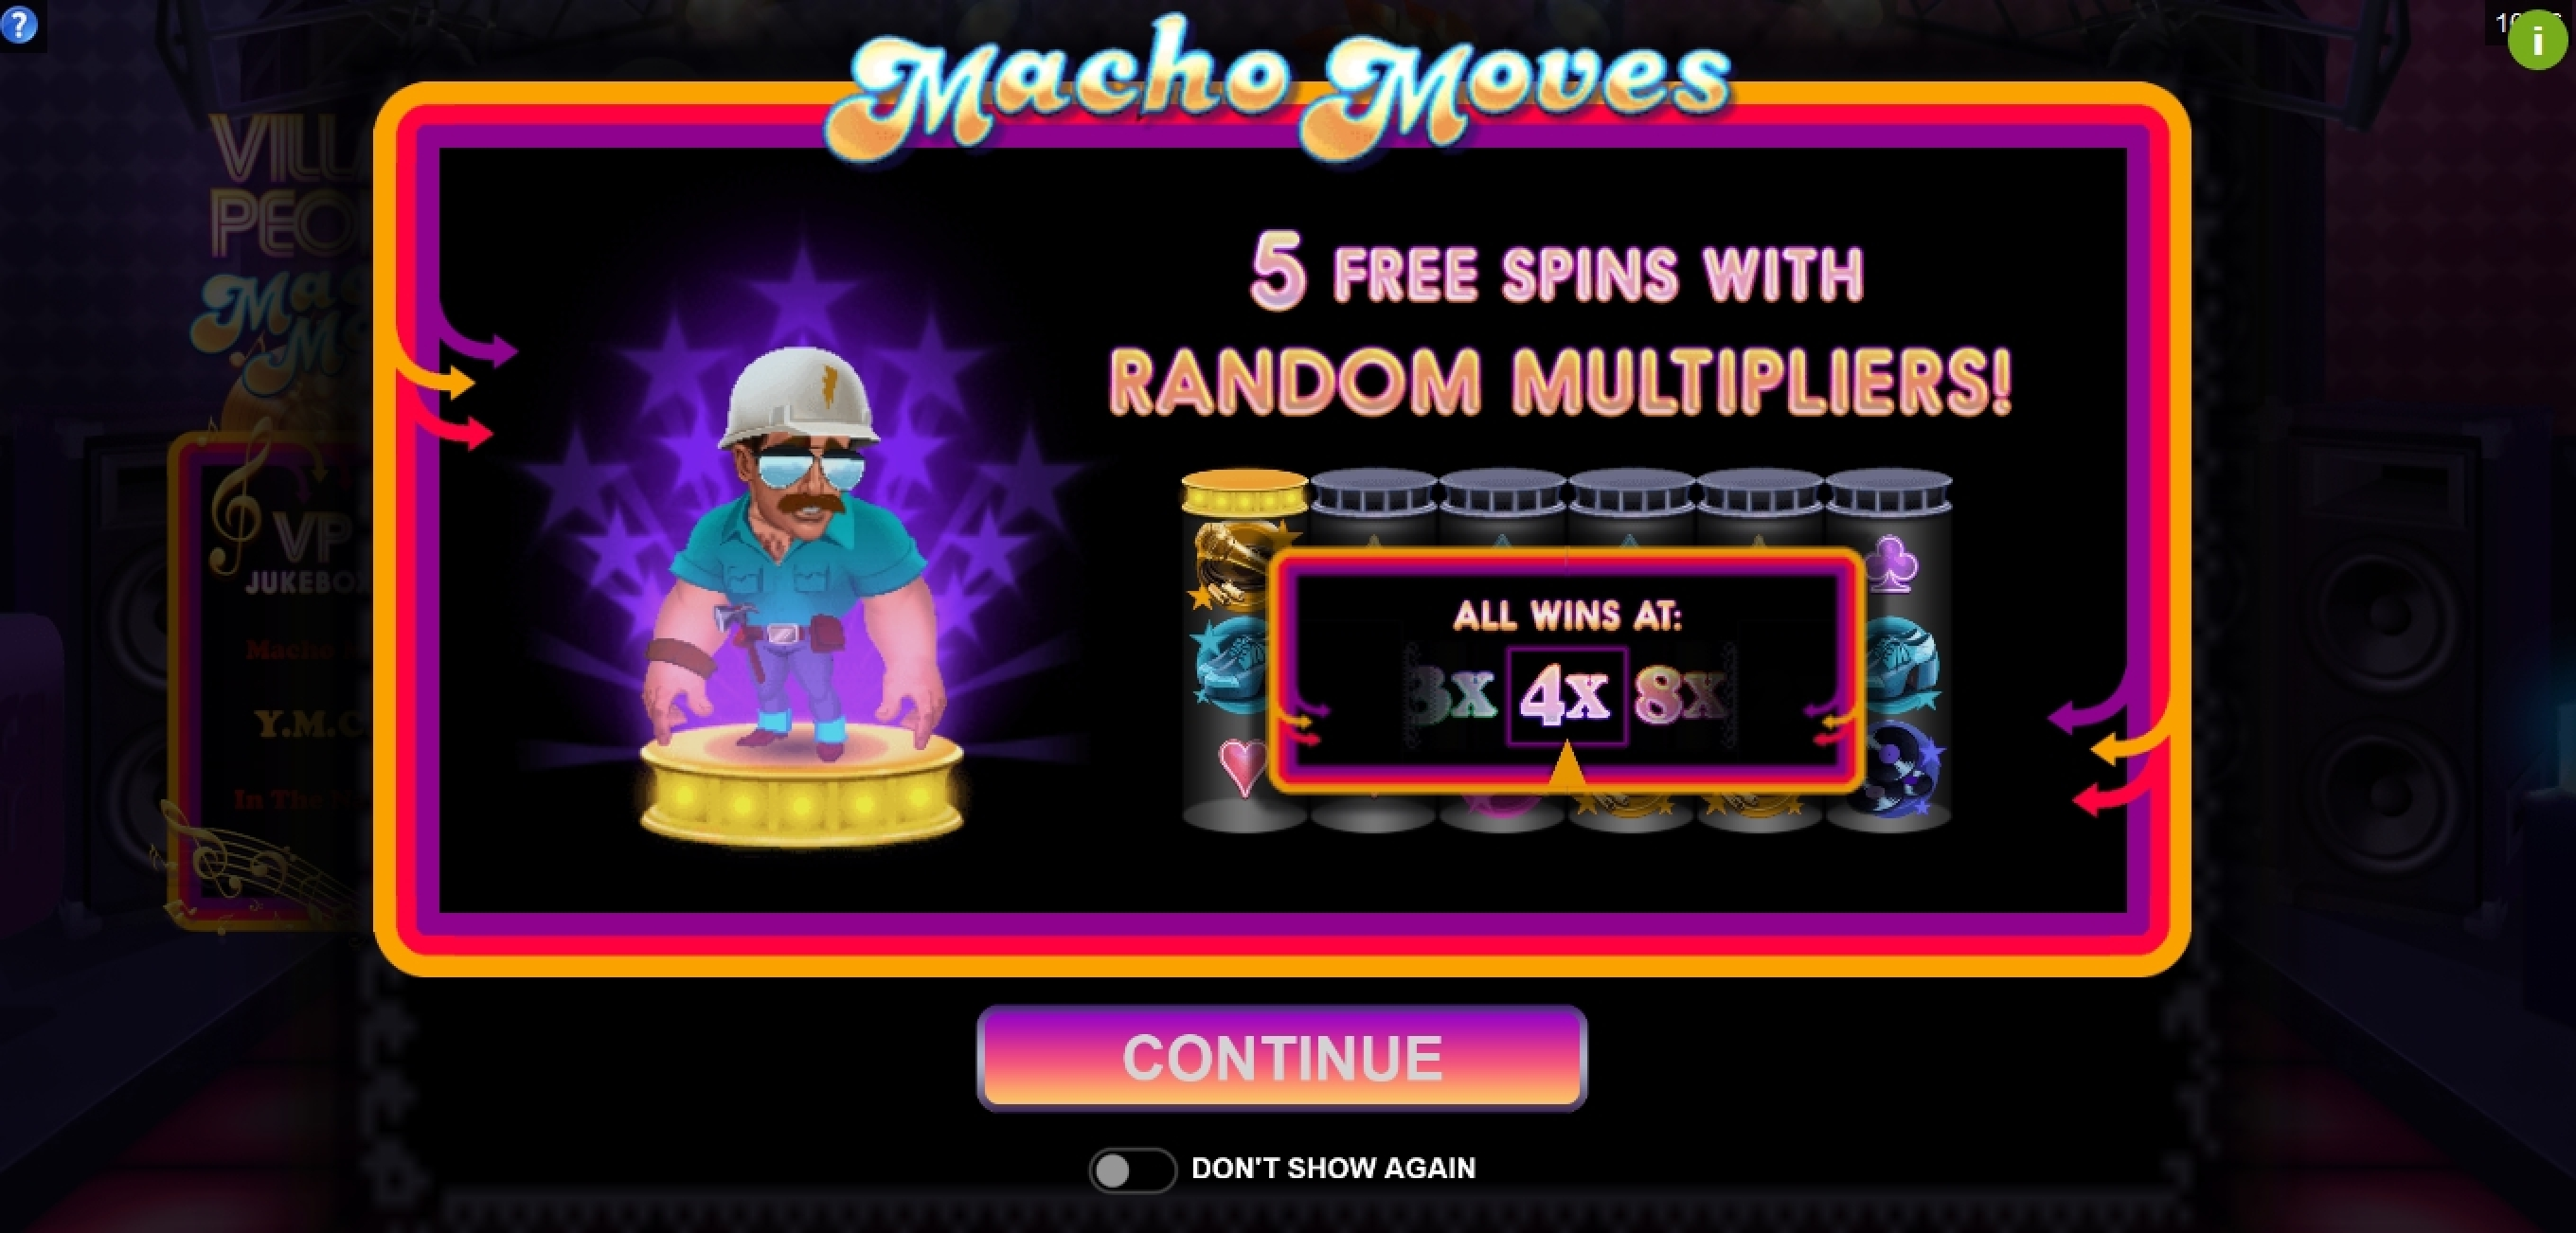 Play Village People Macho Moves Free Casino Slot Game by Fortune Factory Studios